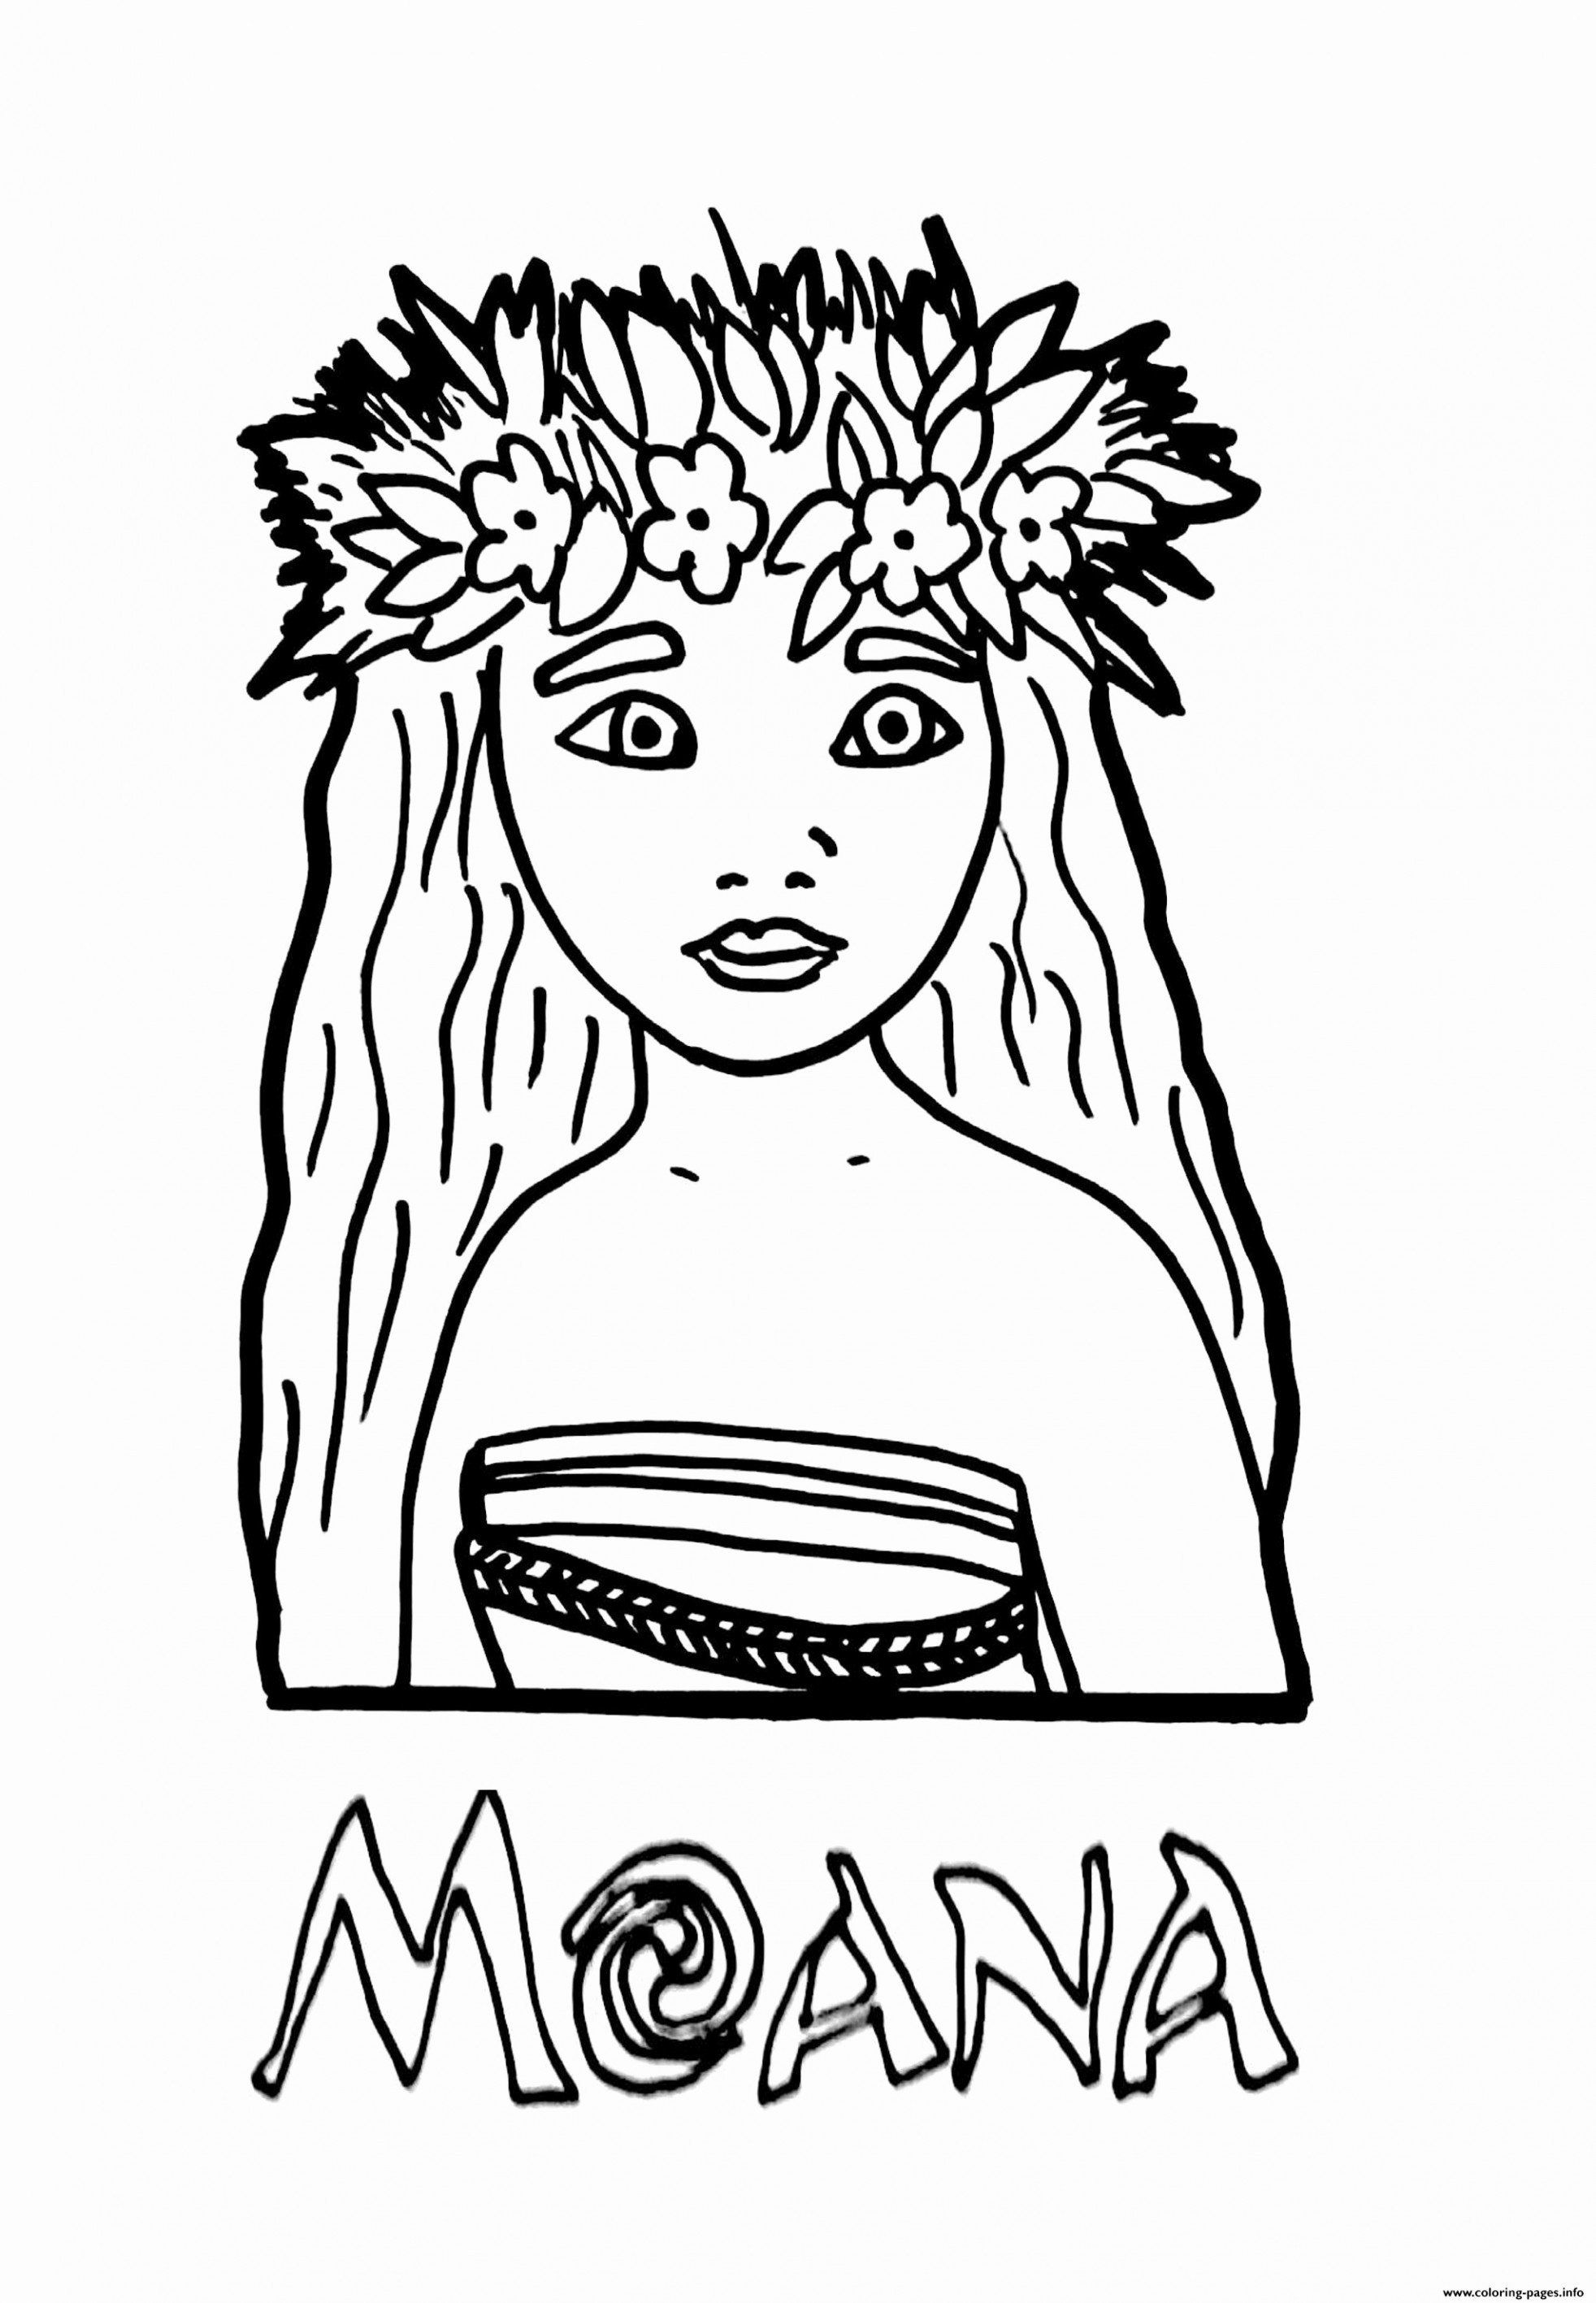 Coloring Books For Toddlers Beautiful Free Printable March Coloring Pages For Kids Coloring Pages Toddler Coloring Book Free Printable Coloring Pages